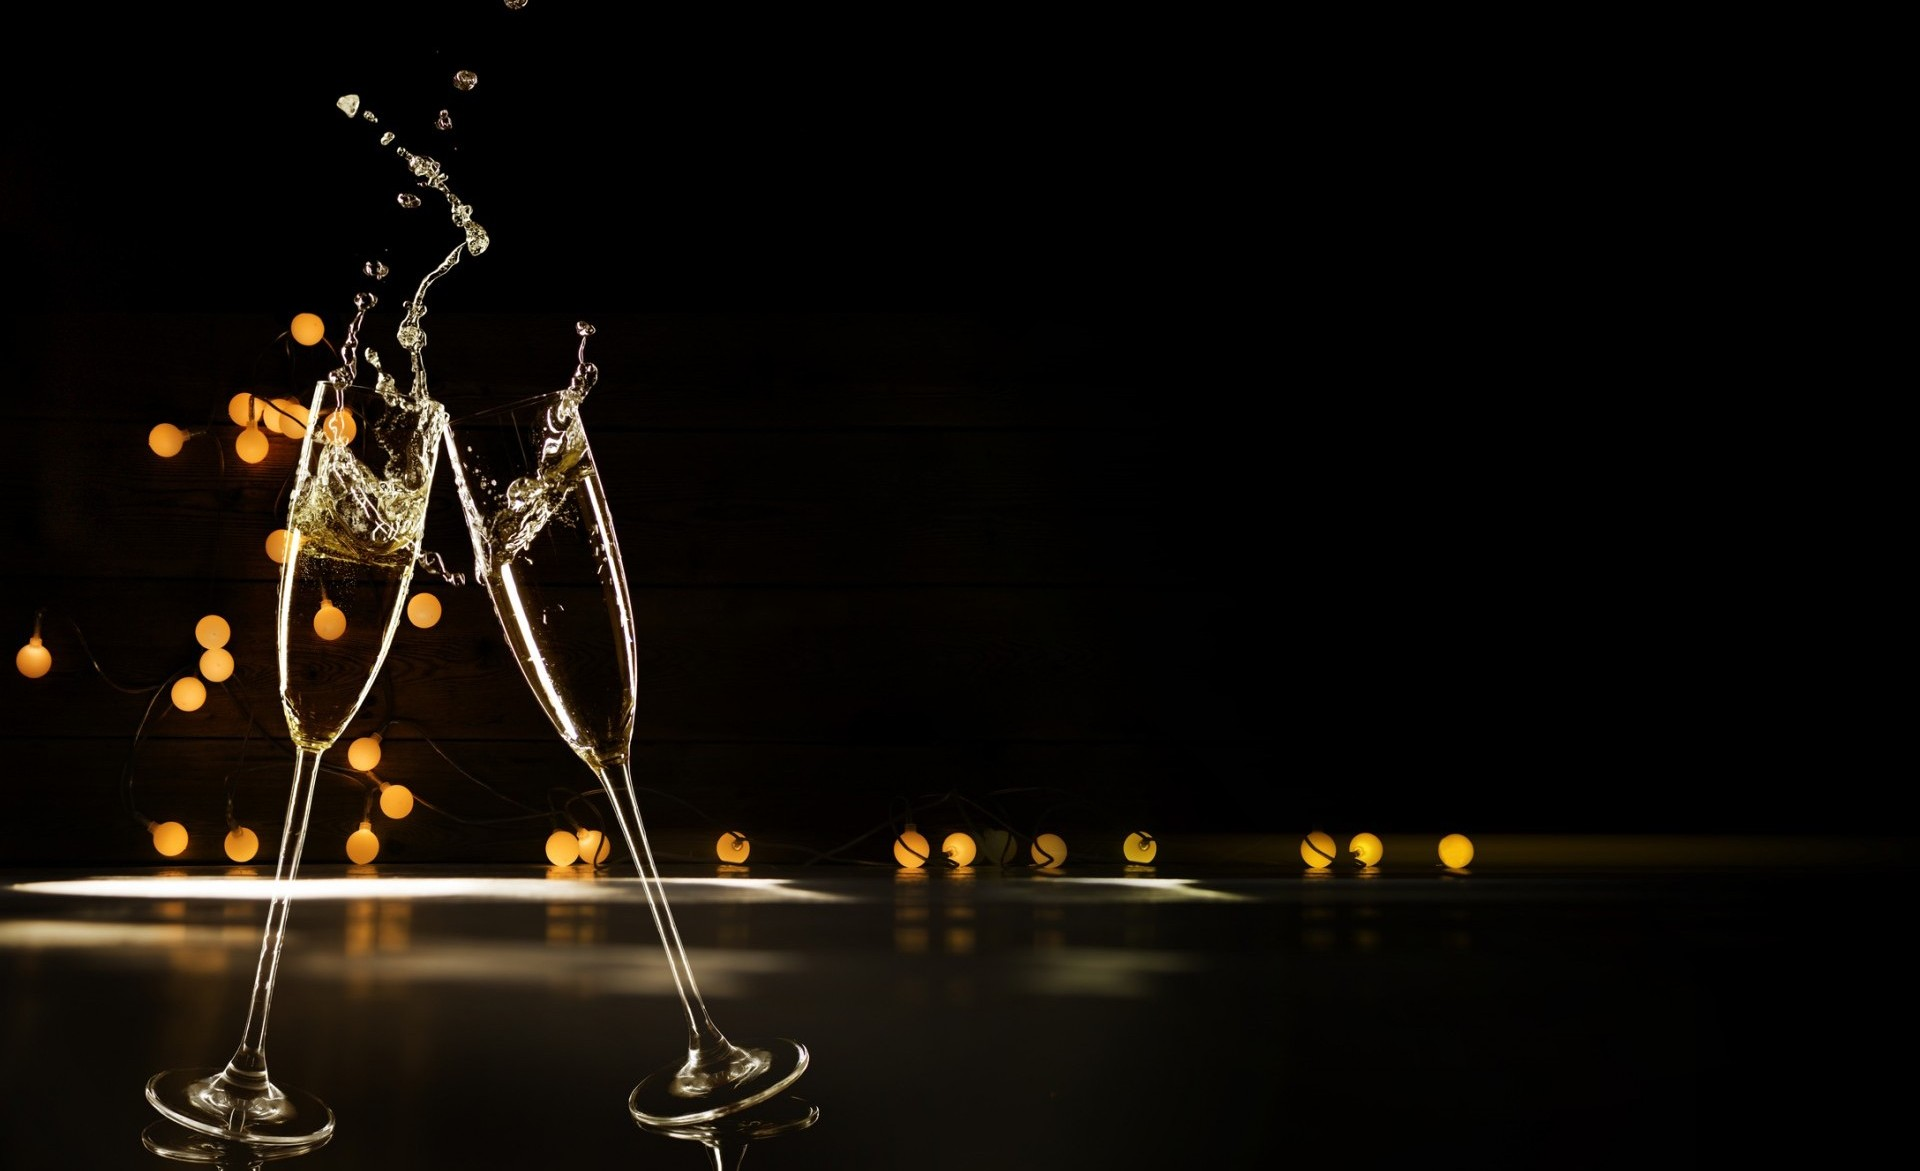 Champagne Glasses Infront Of Defocused Lights